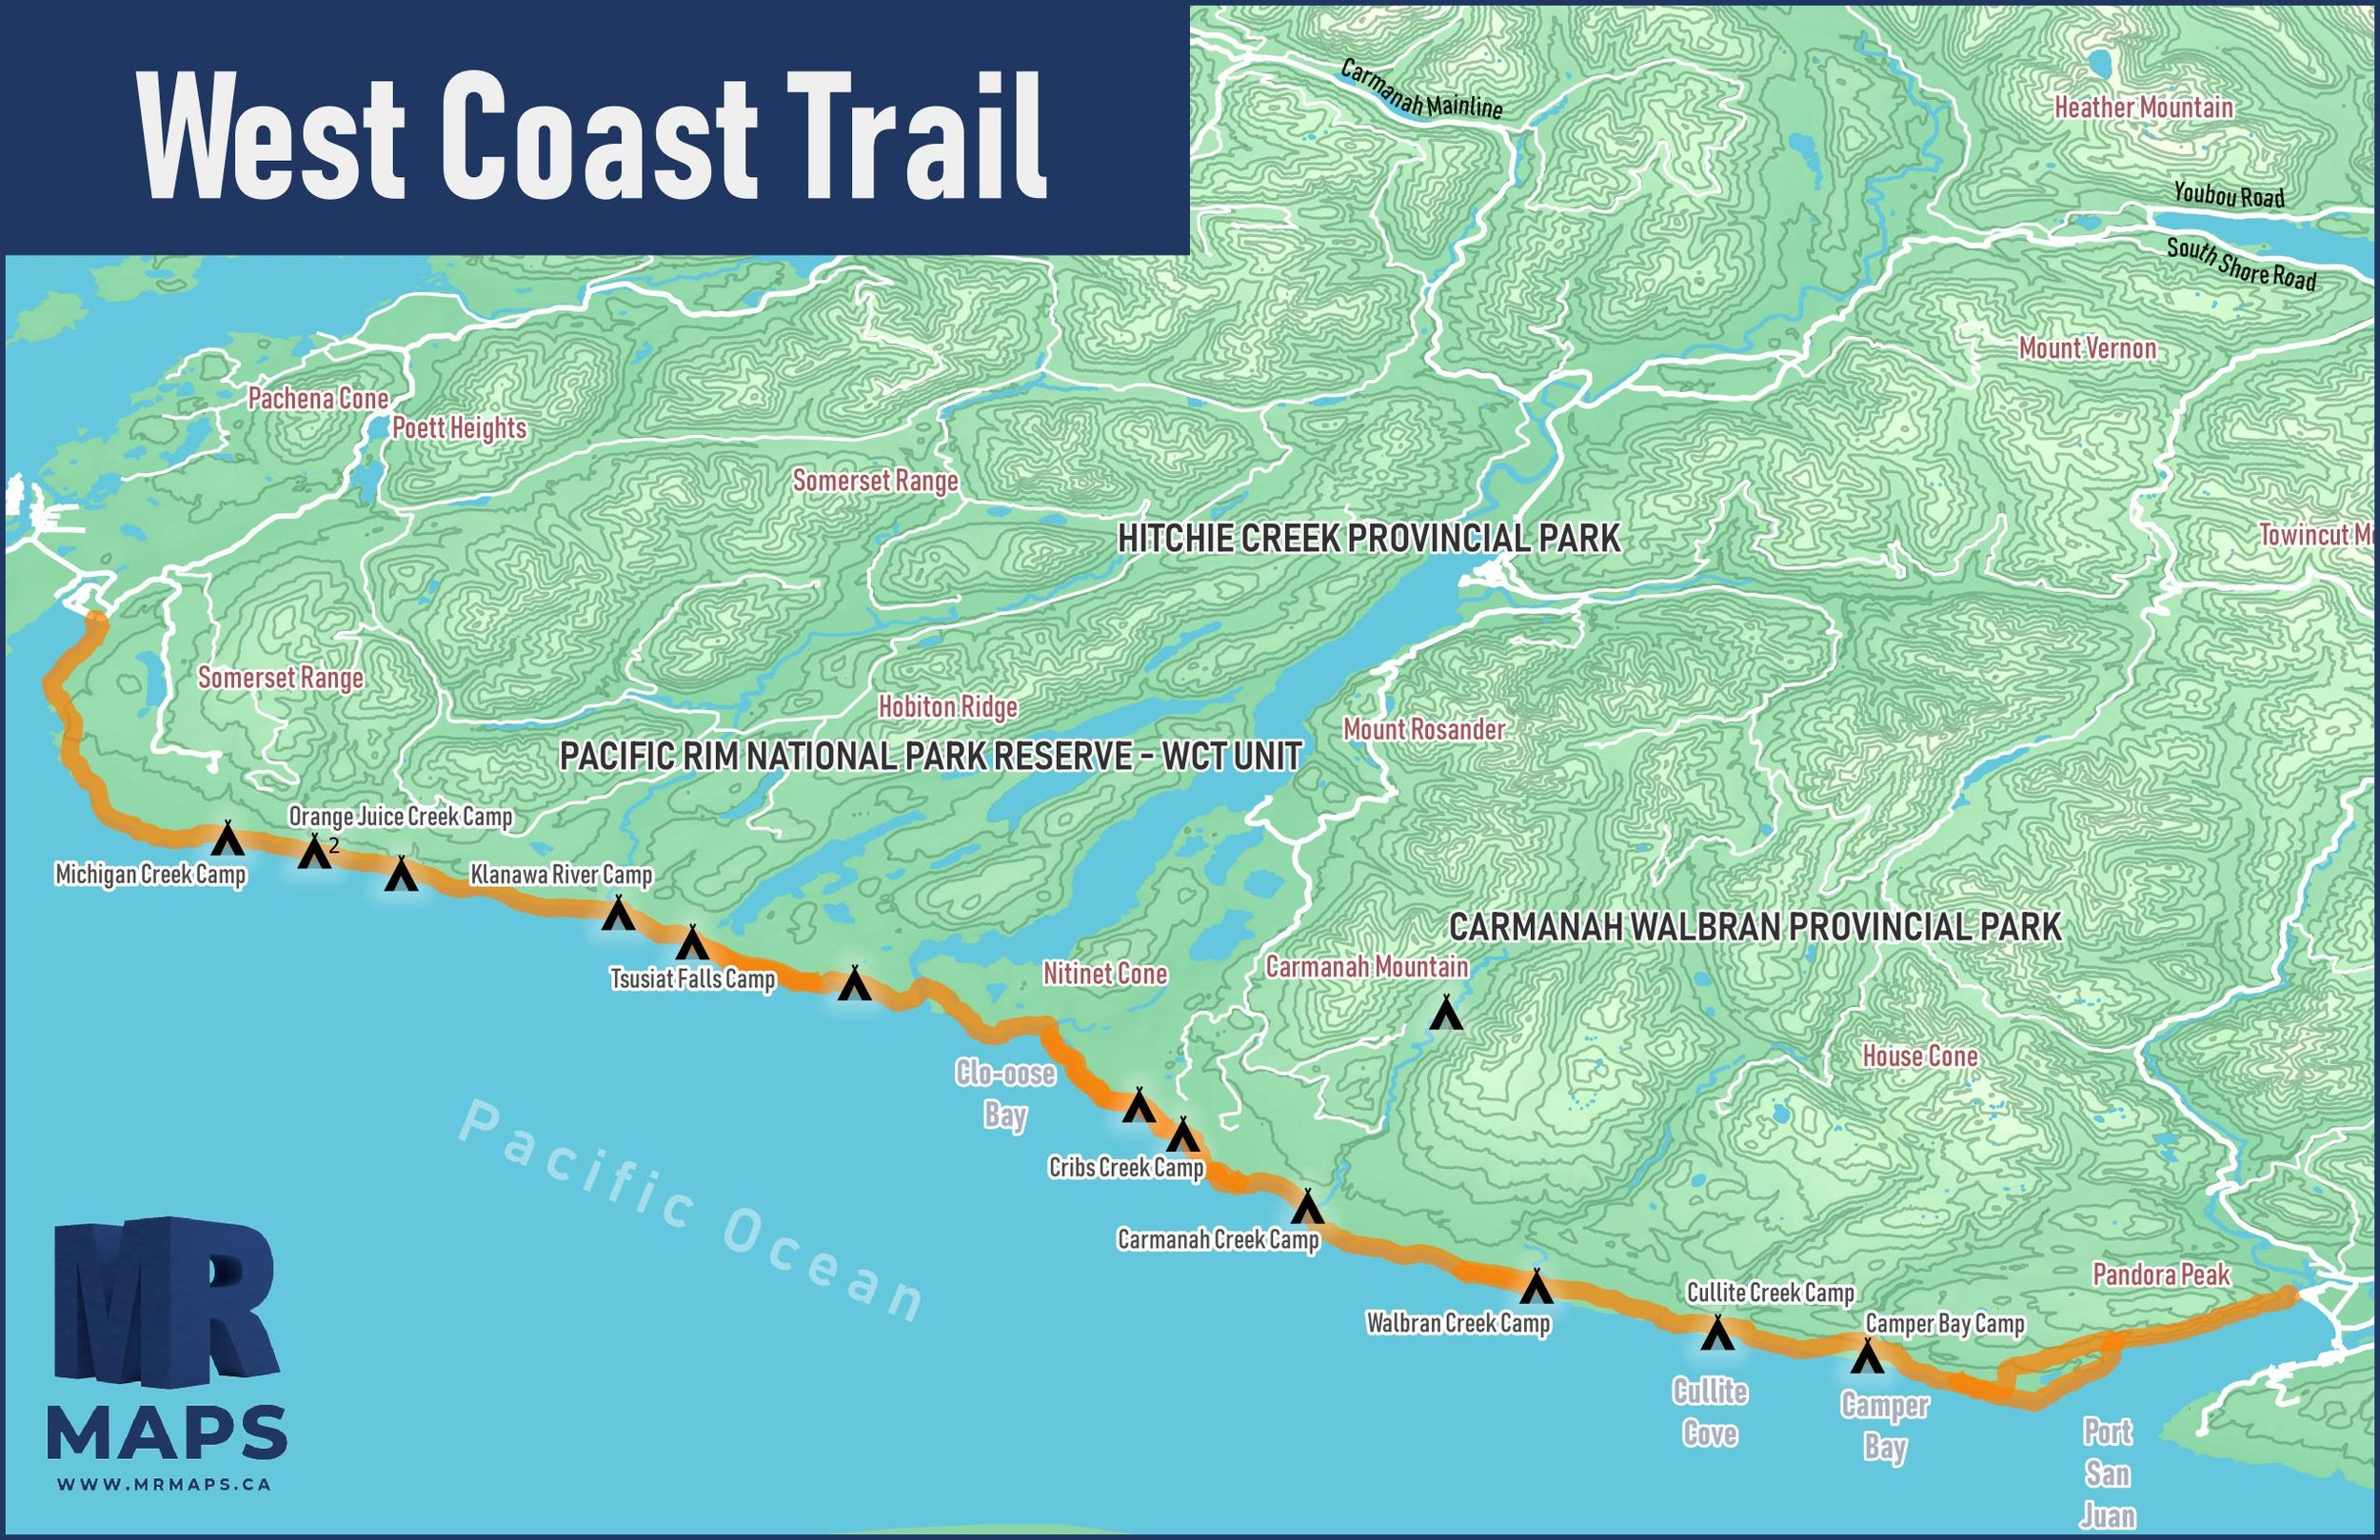 Best Multi-Day Hikes in Canada – The West Coast Trail (BC ... on alaska map, alberta map, calgary map, london map, or map, manitoba map, india map, surrey map, british columbia map, brazil map, costa rica map, nova scotia map, maryland map, ks map, united kingdom map, hungary map, madagascar map, de map, ontario map, vancouver map,